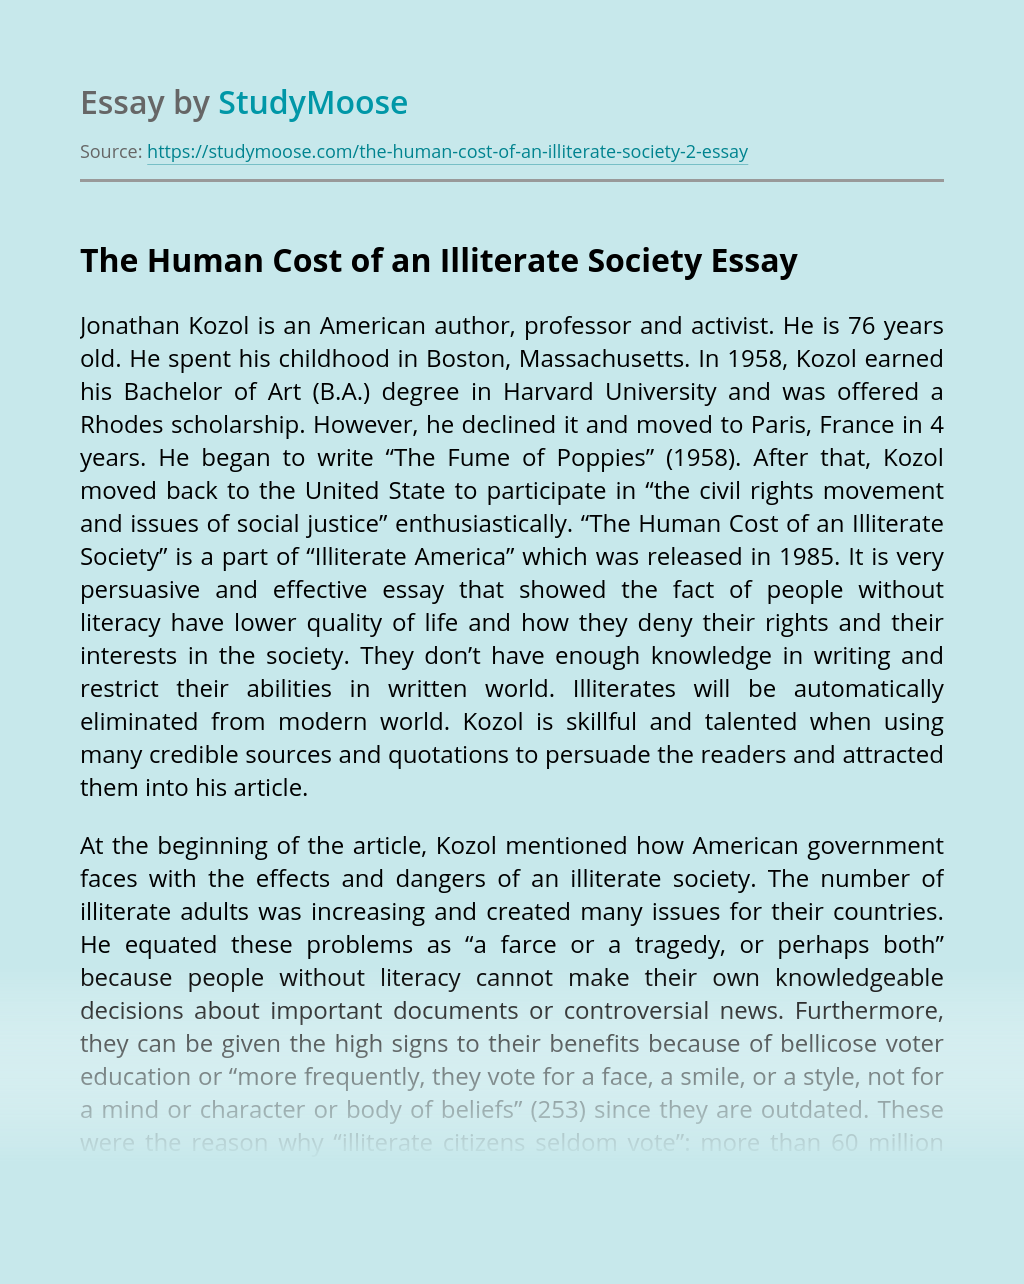 The Human Cost of an Illiterate Society